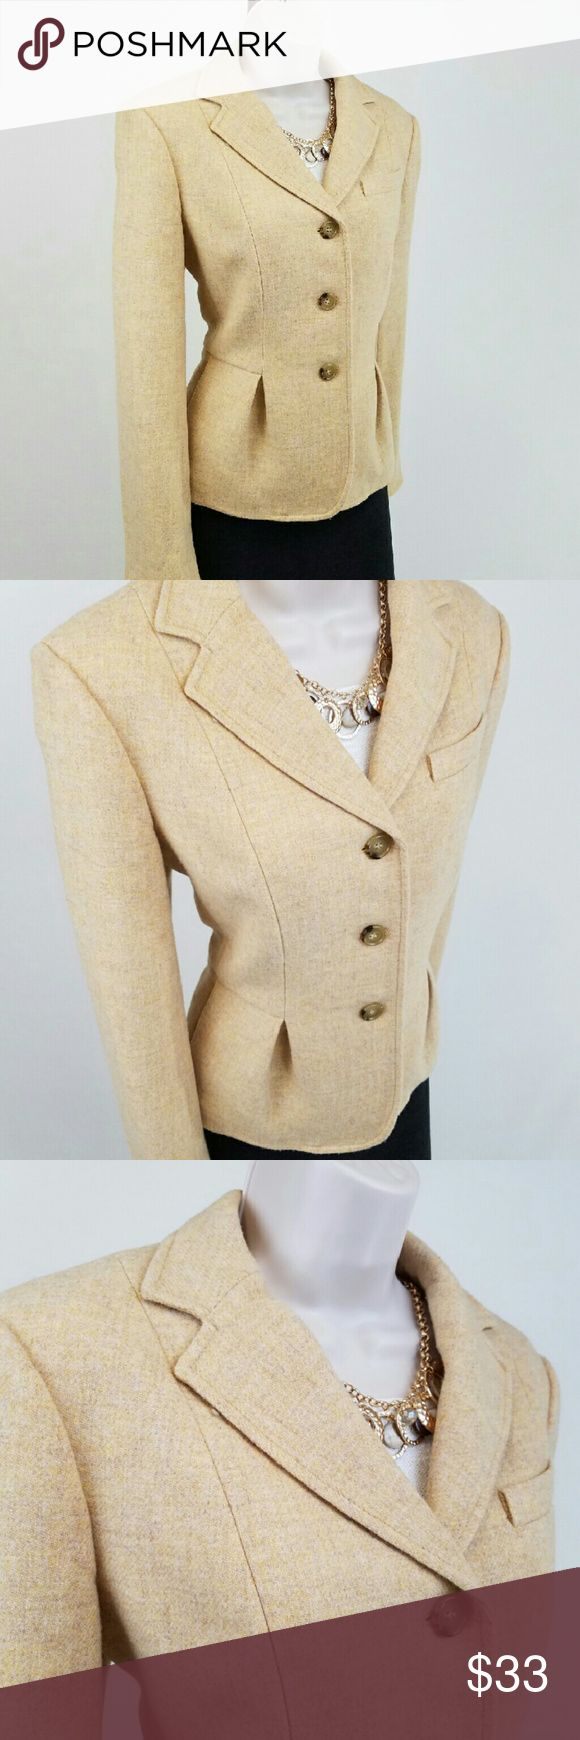 Pale yellow wool blazer Talbots Grace Fit wool blazer in shortbread cookie yellow.  Features long sleeves with slit cuffs, three-button closure, single breast pocket, 2 on-seam pockets, a pleated peplum, and light shoulder pads.  Fully lined.  Refined and beautifully tailored.  Bust 19 / waist 17.5 / length 23 inches.  100% wool; lining 100% polyester.  Thanks for visiting my closet; come back soon & see what's new!  I add listings every week! Talbots Jackets & Coats